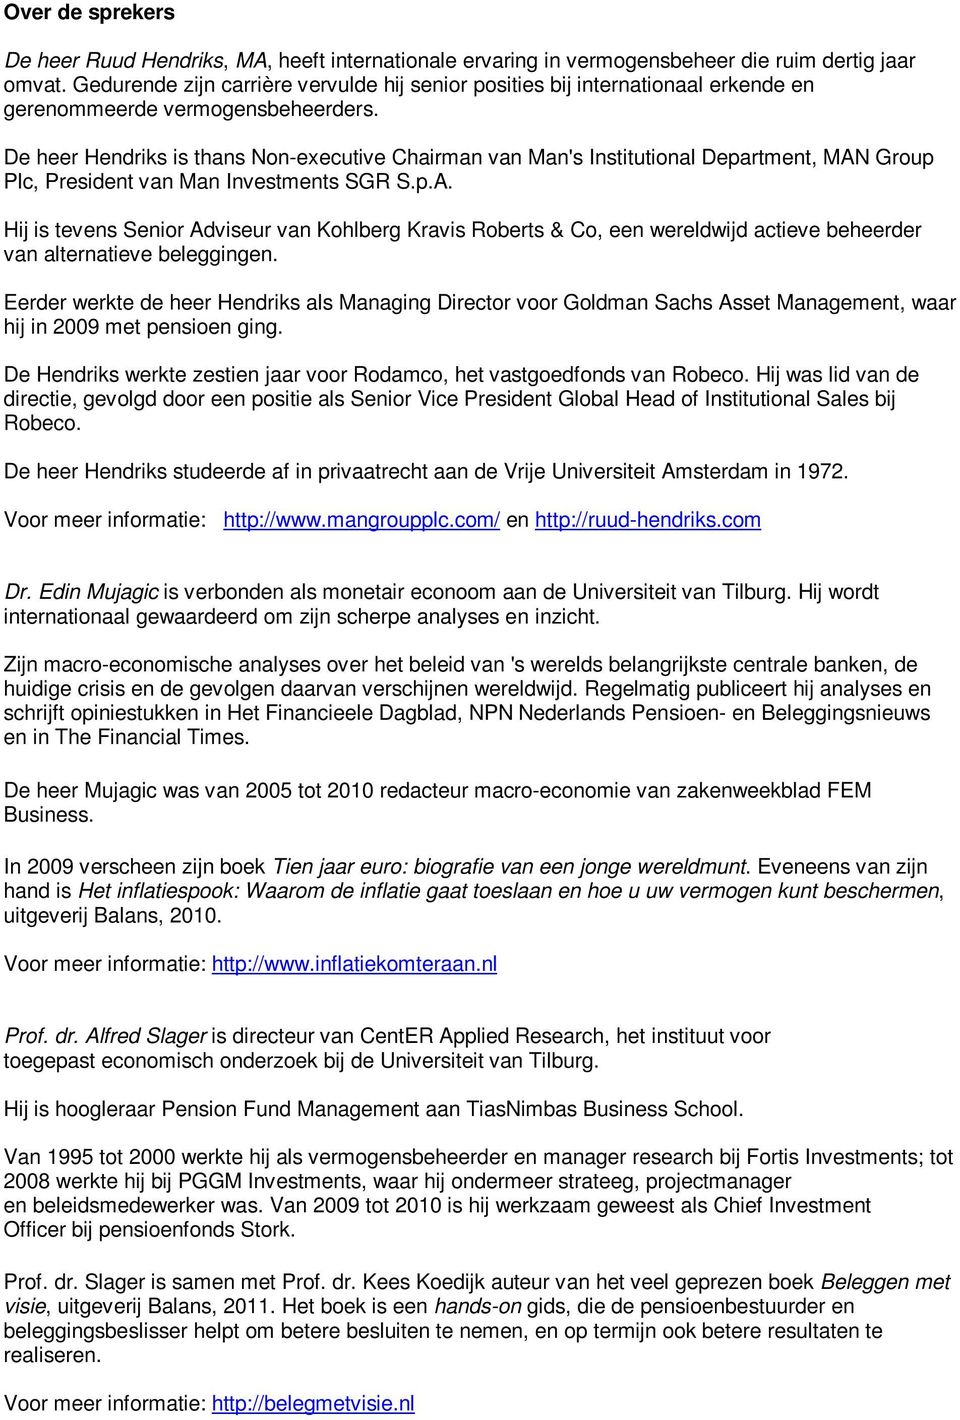 De heer Hendriks is thans Non-executive Chairman van Man's Institutional Department, MAN